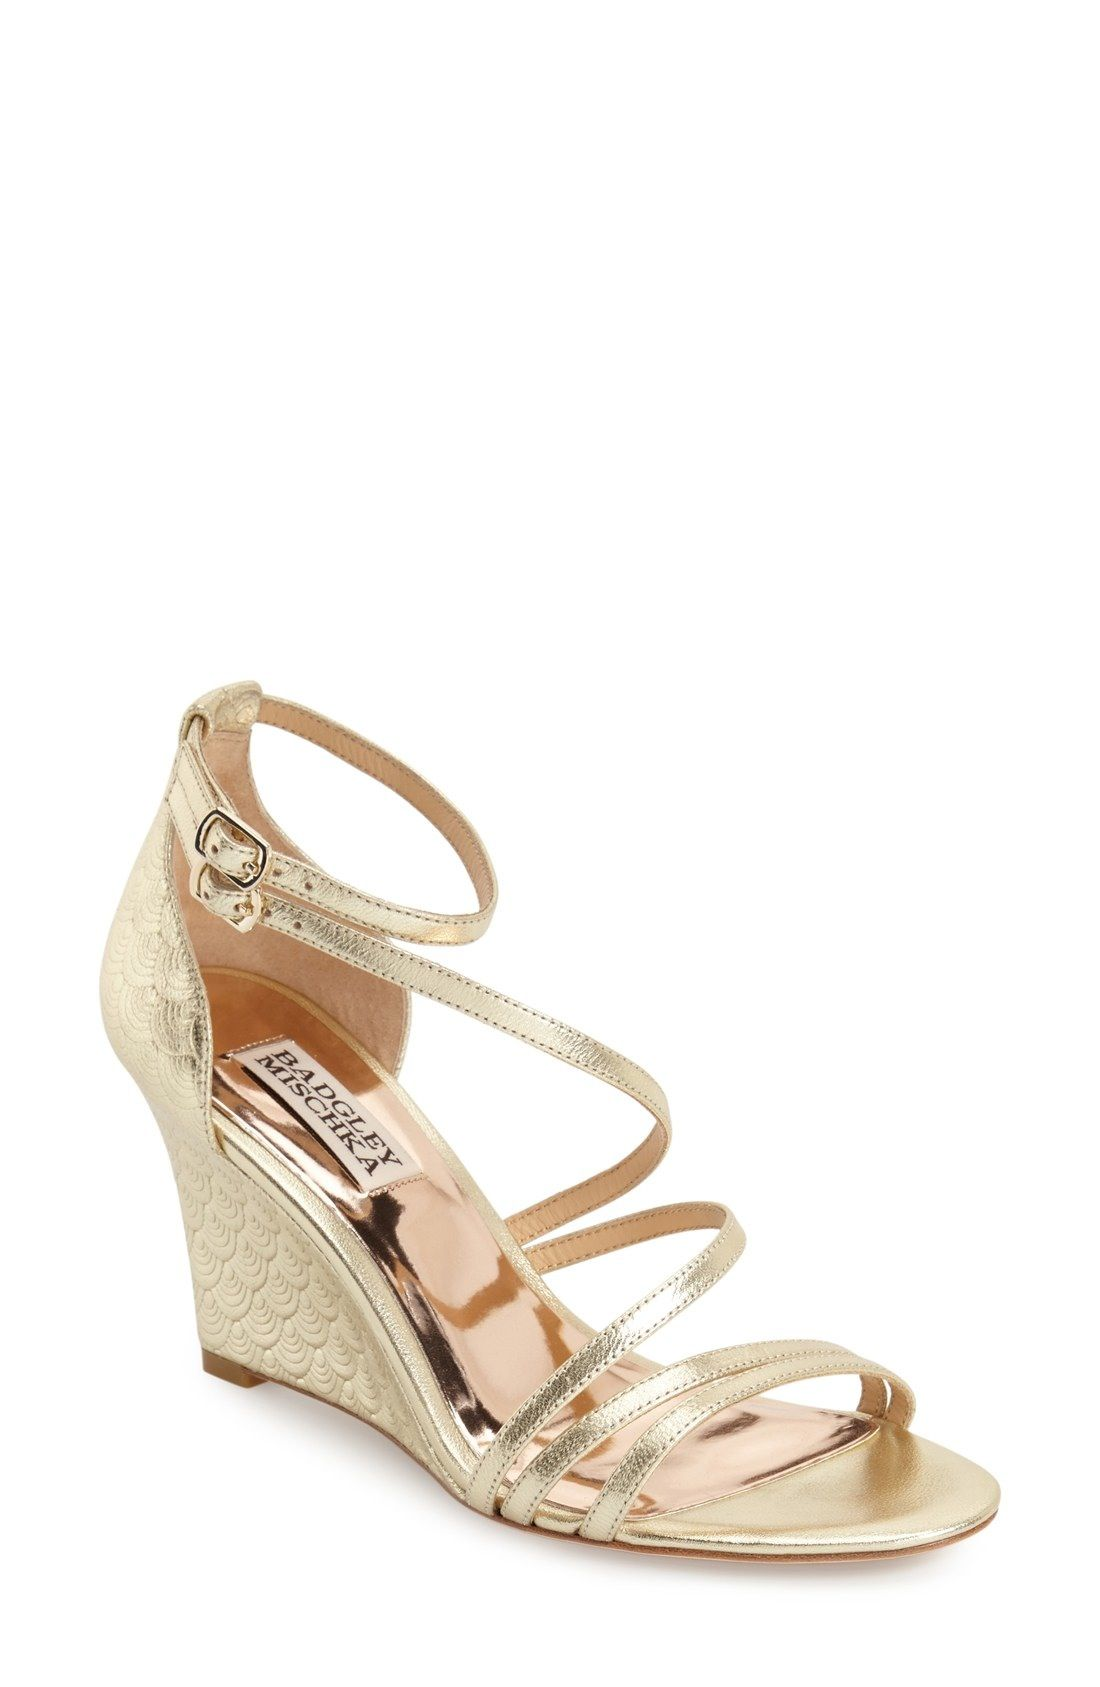 Badgley Mischka 'Carnation II' Wedge Sandal (Women) available at #Nordstrom